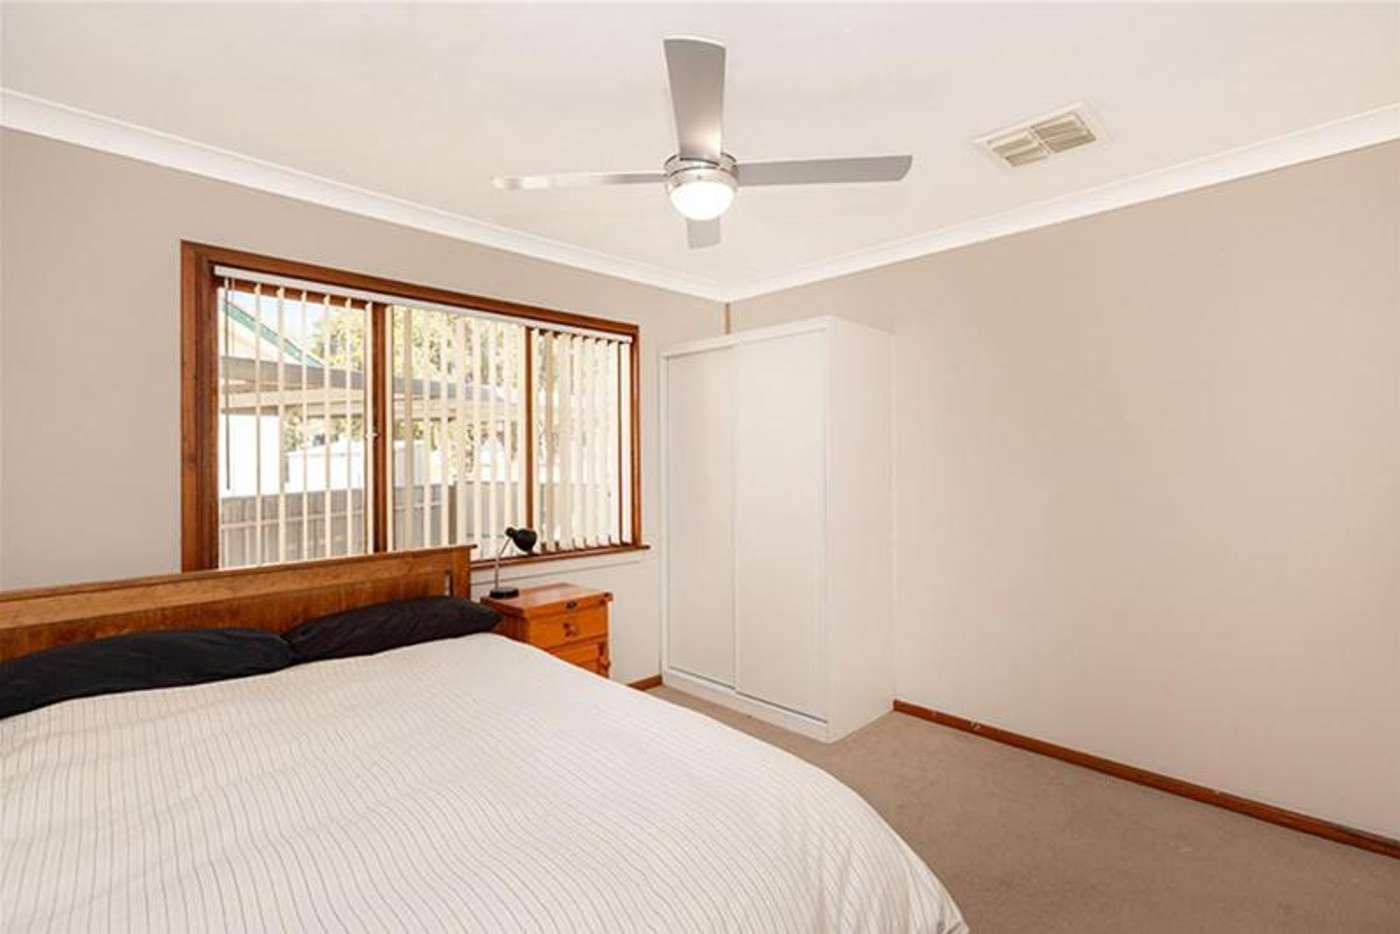 Fifth view of Homely house listing, 44 Jaeger Avenue, Gunnedah NSW 2380